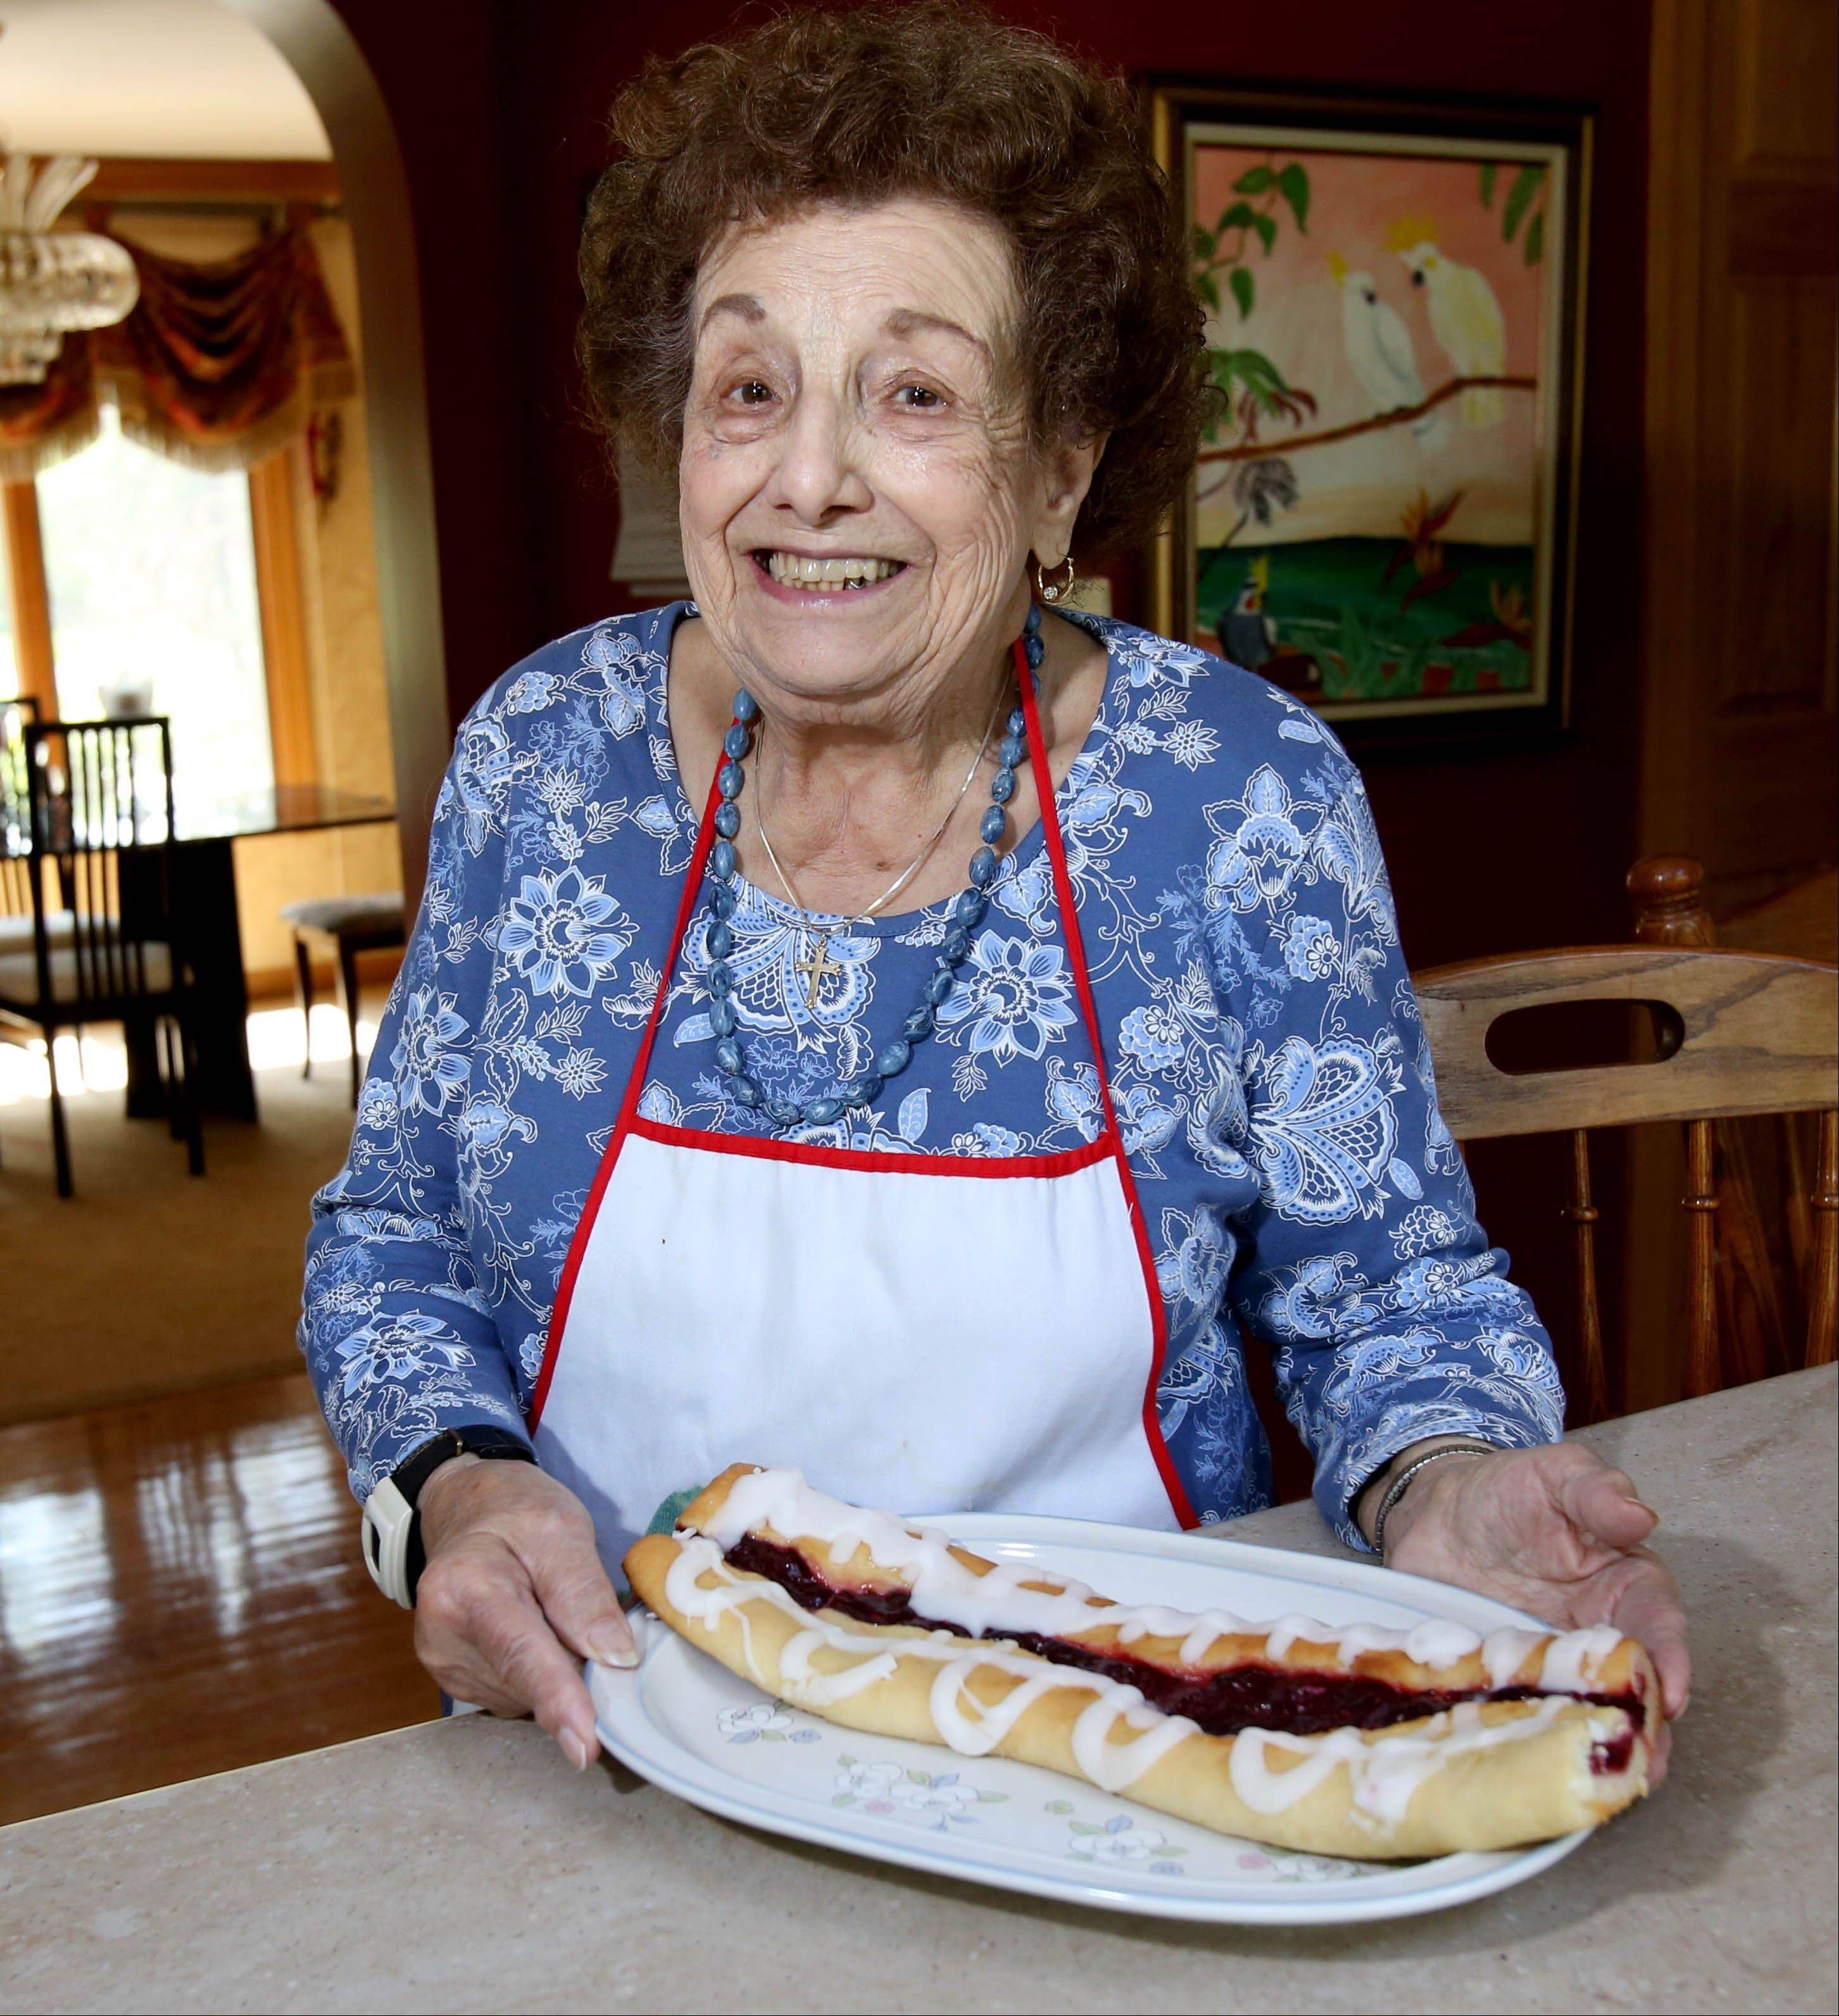 If you're looking for Rose Palma check the kitchen first. This Glen Ellyn octogenarian prepares pasta for high school football players and bakes dozens of coffee cakes every month to share with Milton Township committee members.